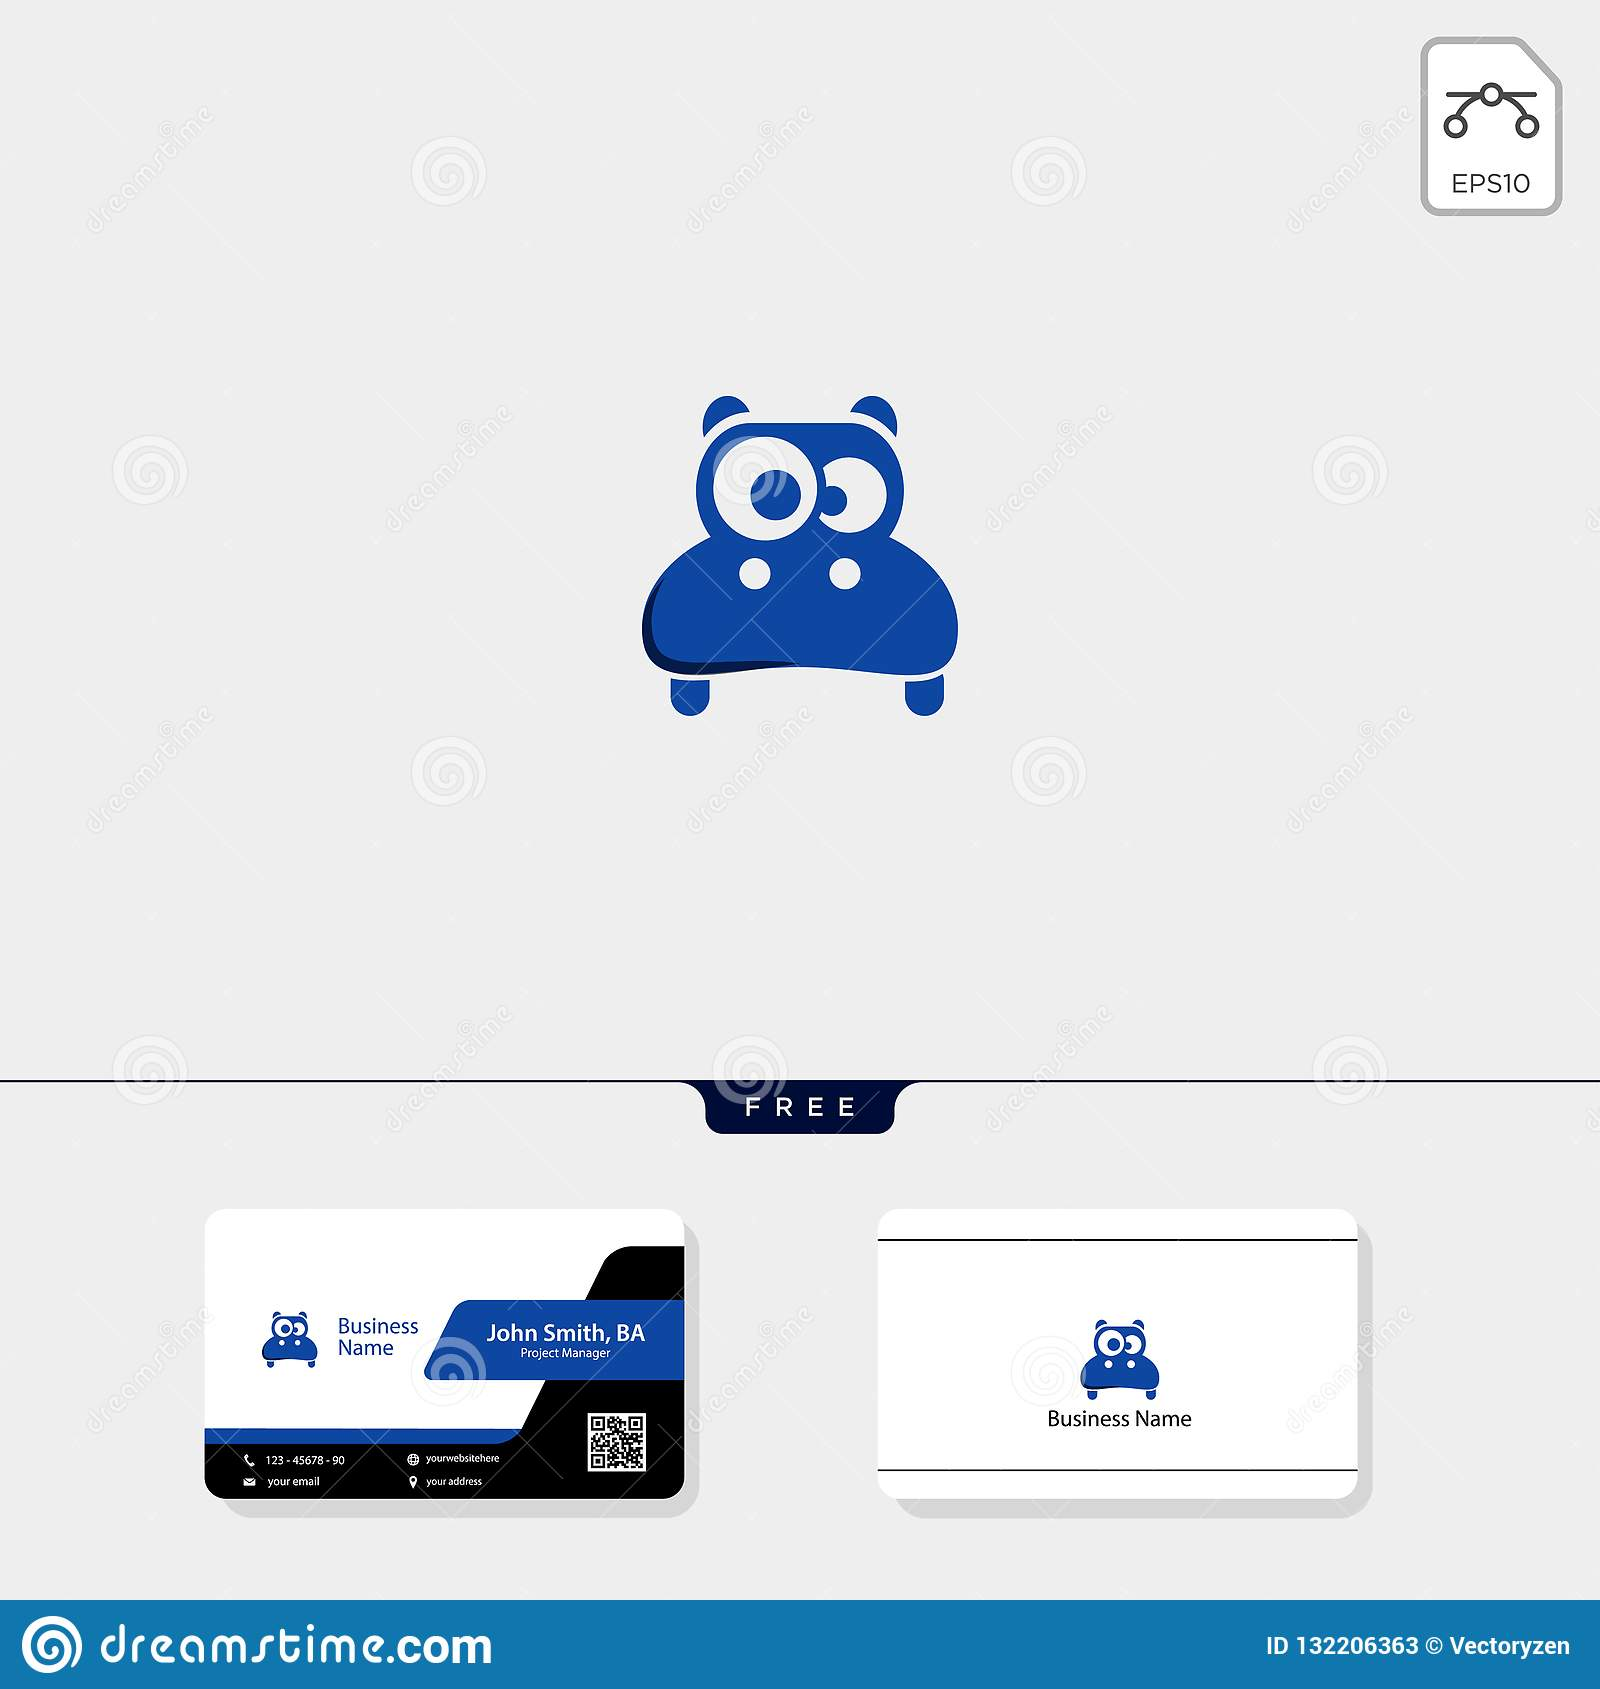 hight resolution of cute head hippo logo template vector illustration and inspiration free business card design